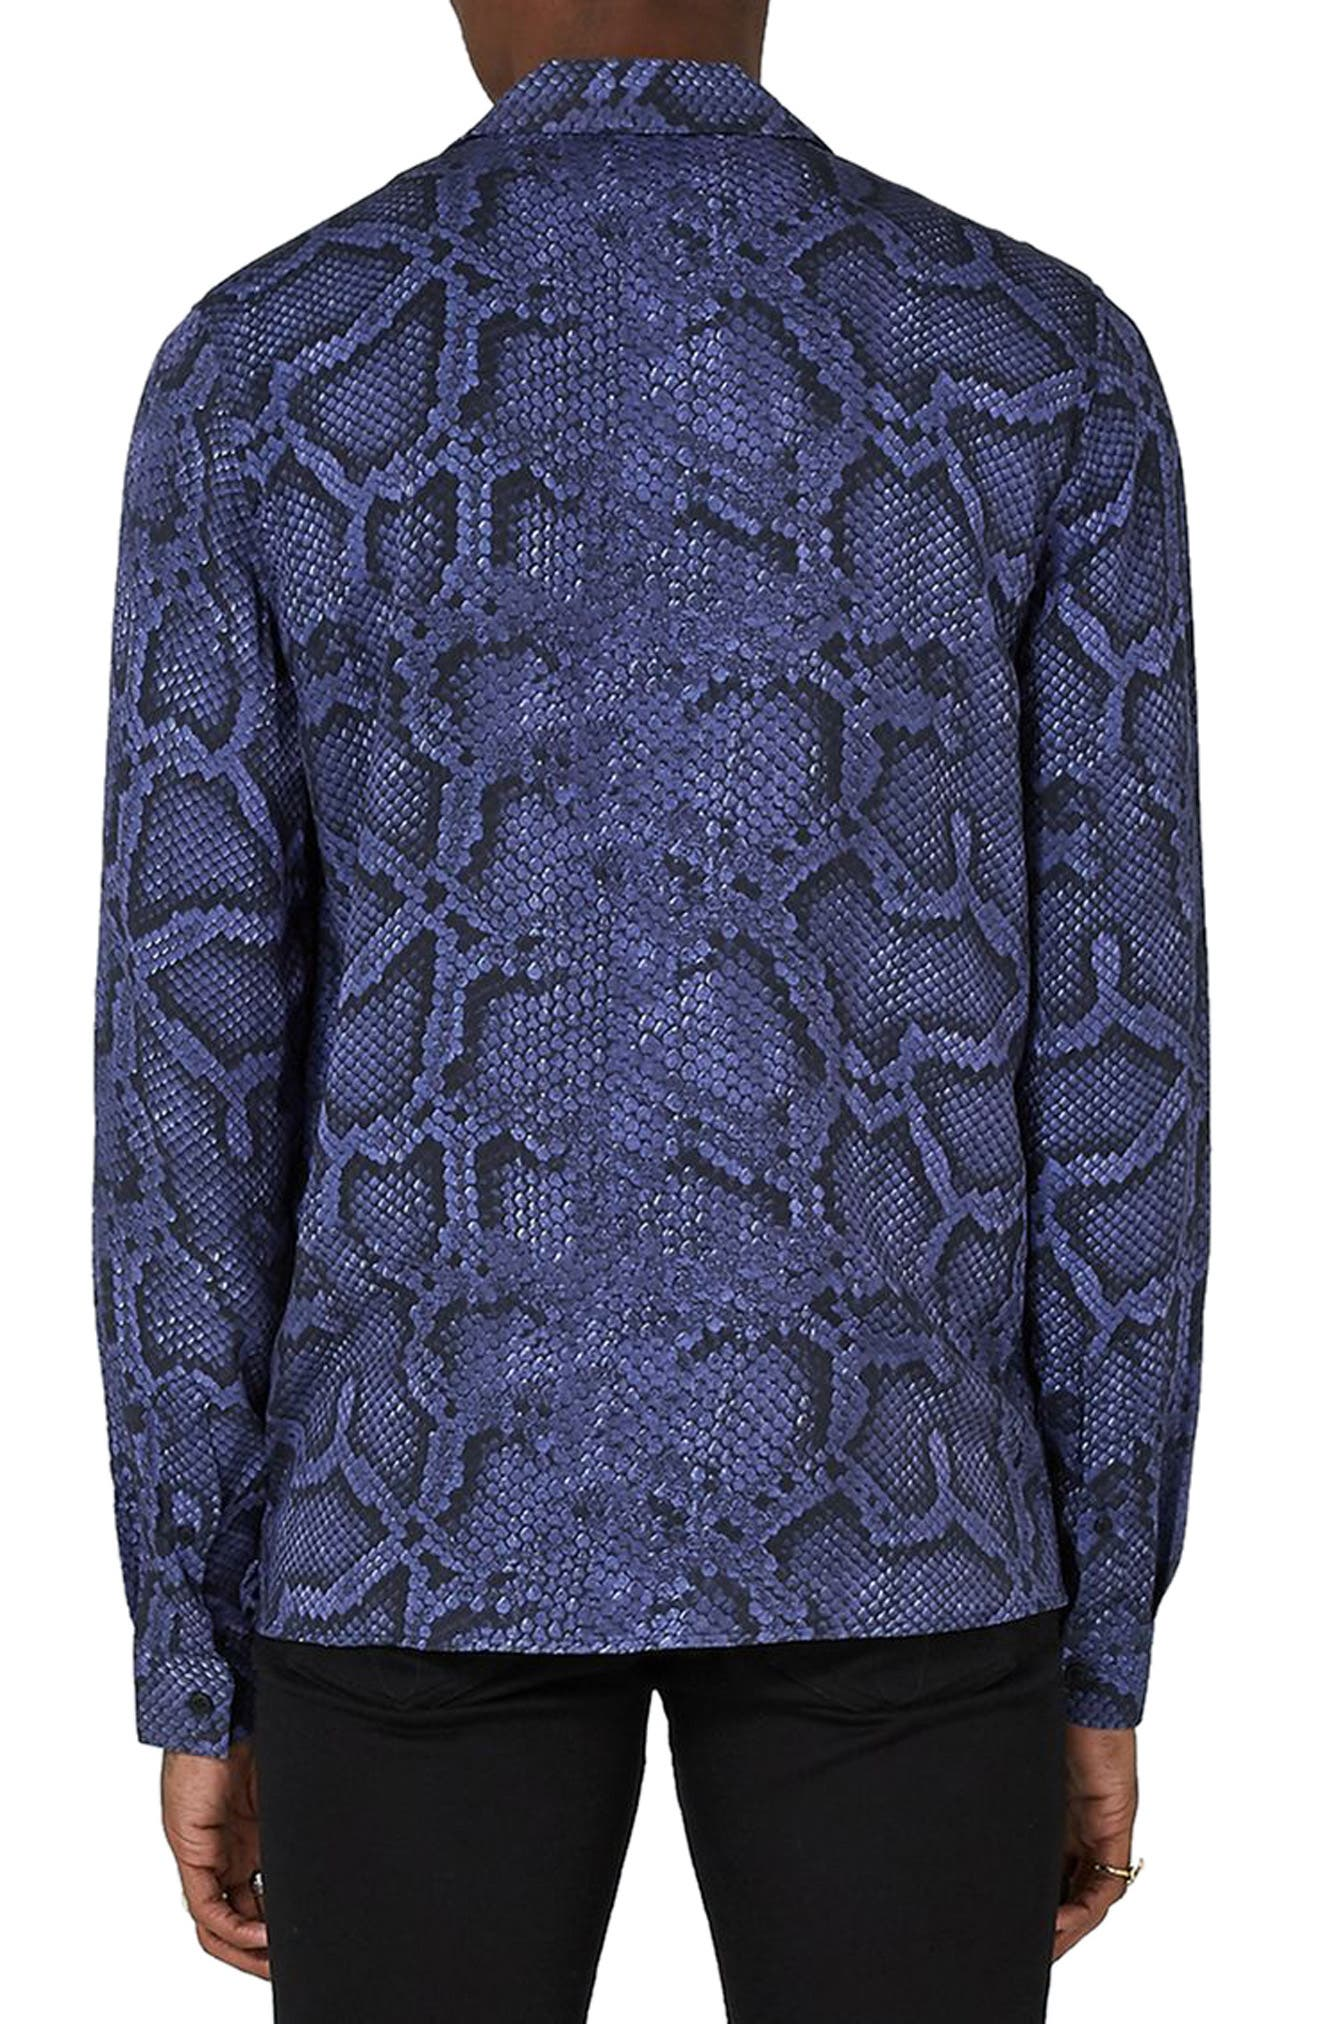 Classic Fit Snakeskin Print Revere Shirt,                             Alternate thumbnail 2, color,                             Purple Multi